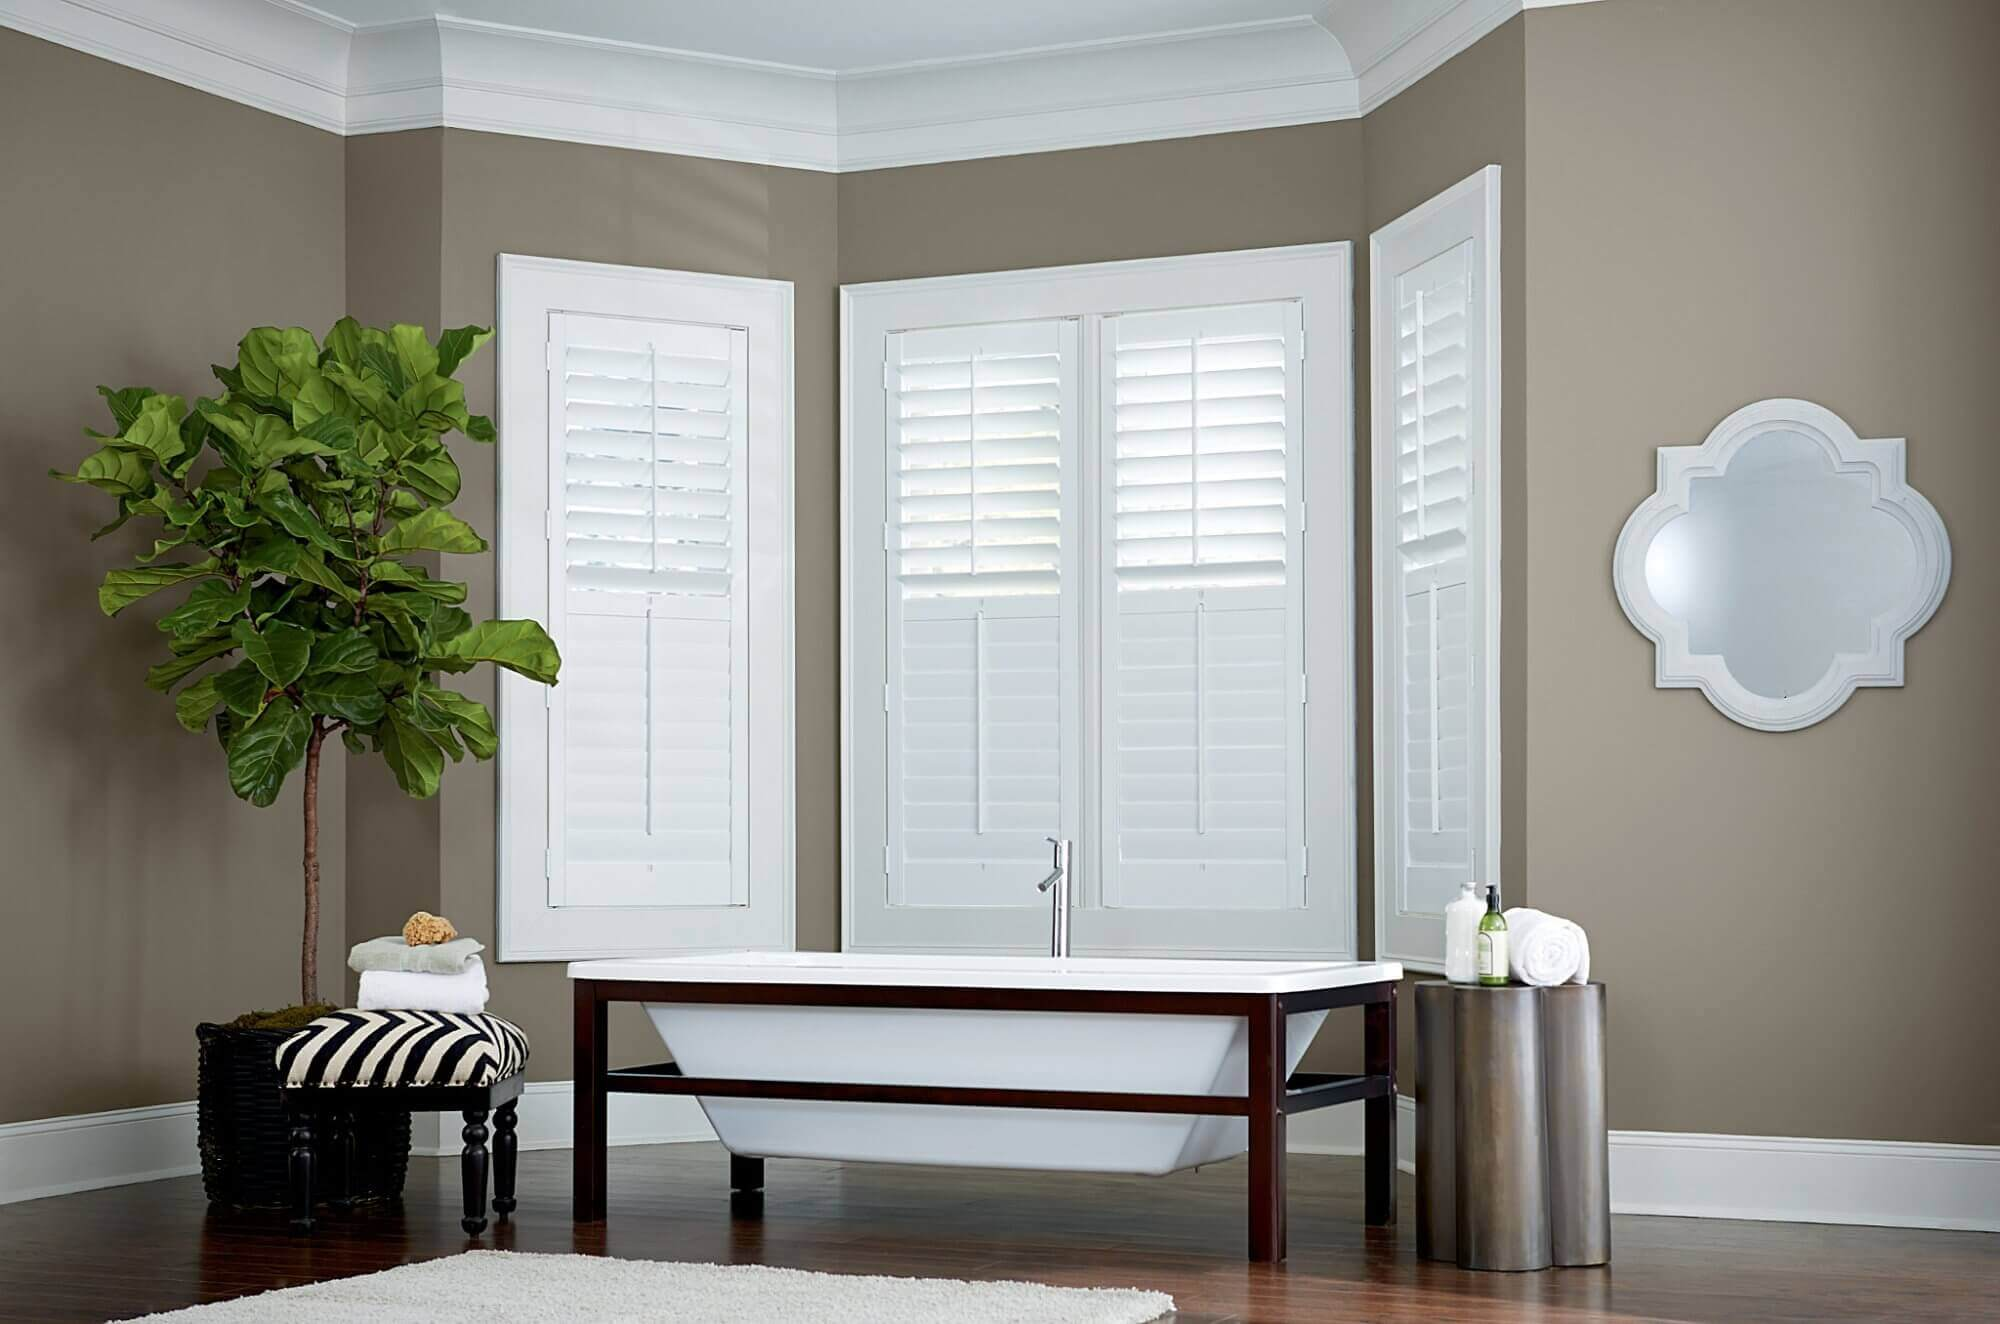 Bathroom window treatments need to allow in light while still providing a certain level of privacy.